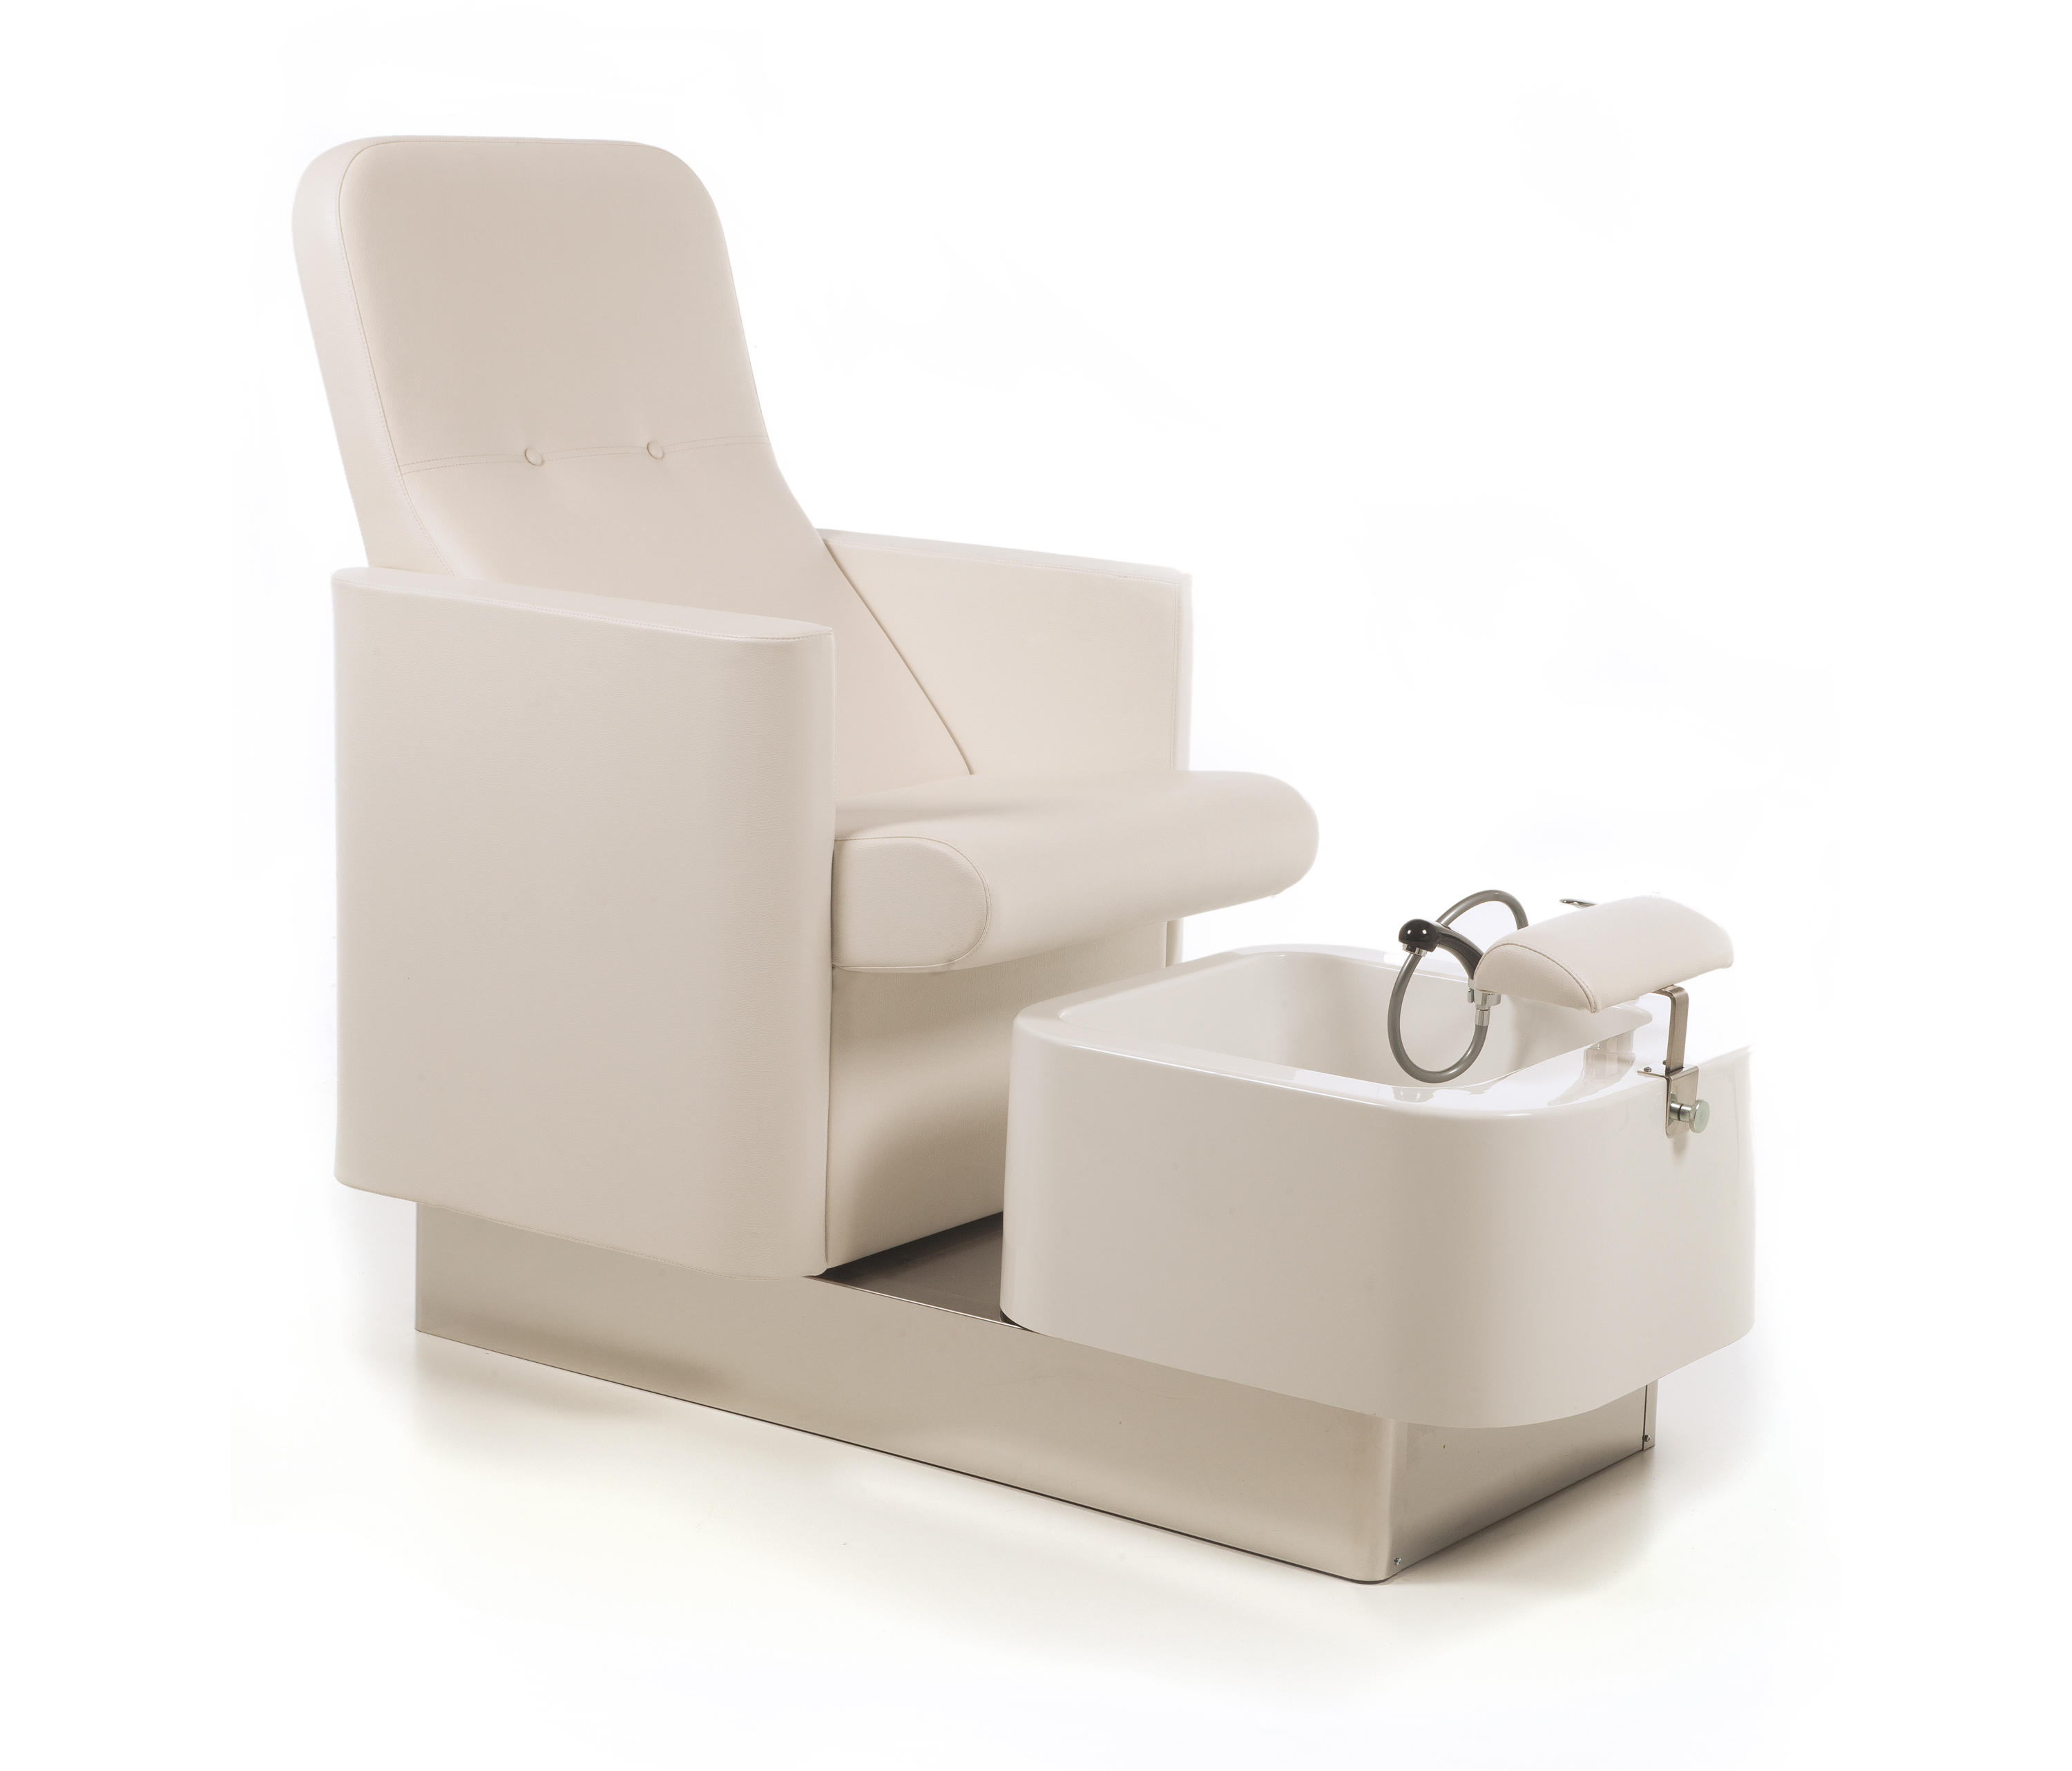 Hydrolounge SPALOGIC Pedicure Spa Se per pedicure